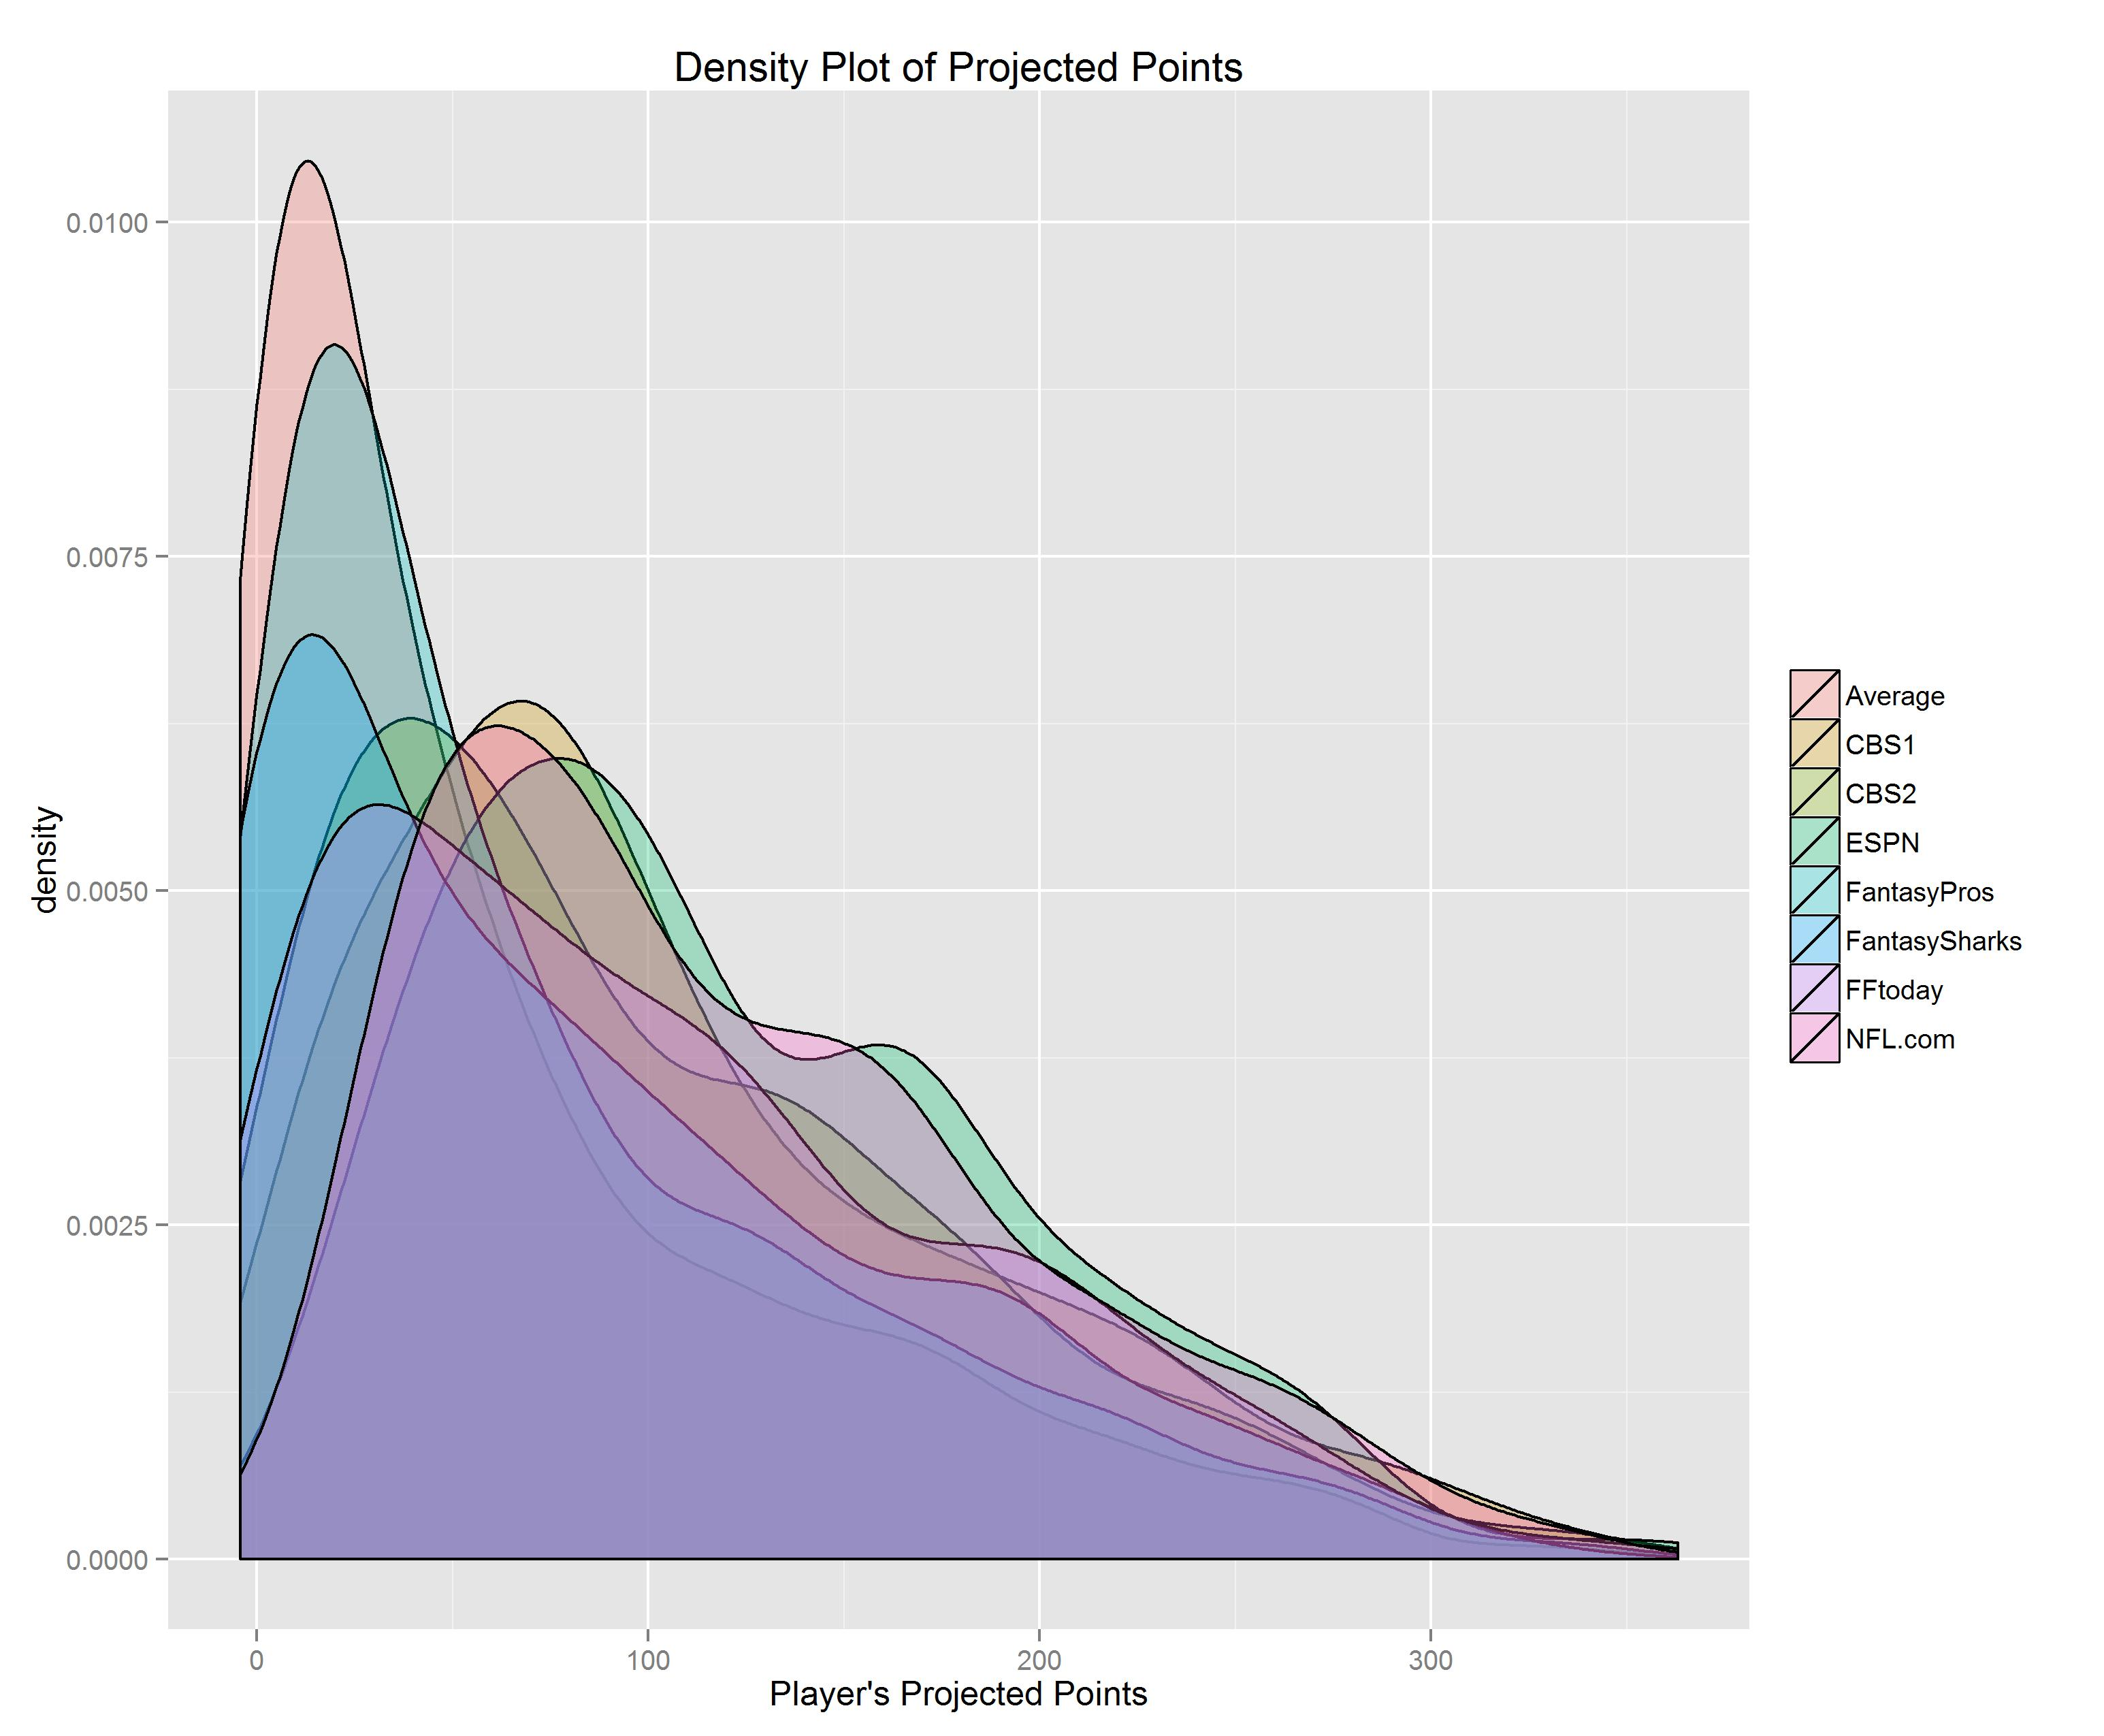 Scraping Fantasy Football Projections from the Web | R-bloggers